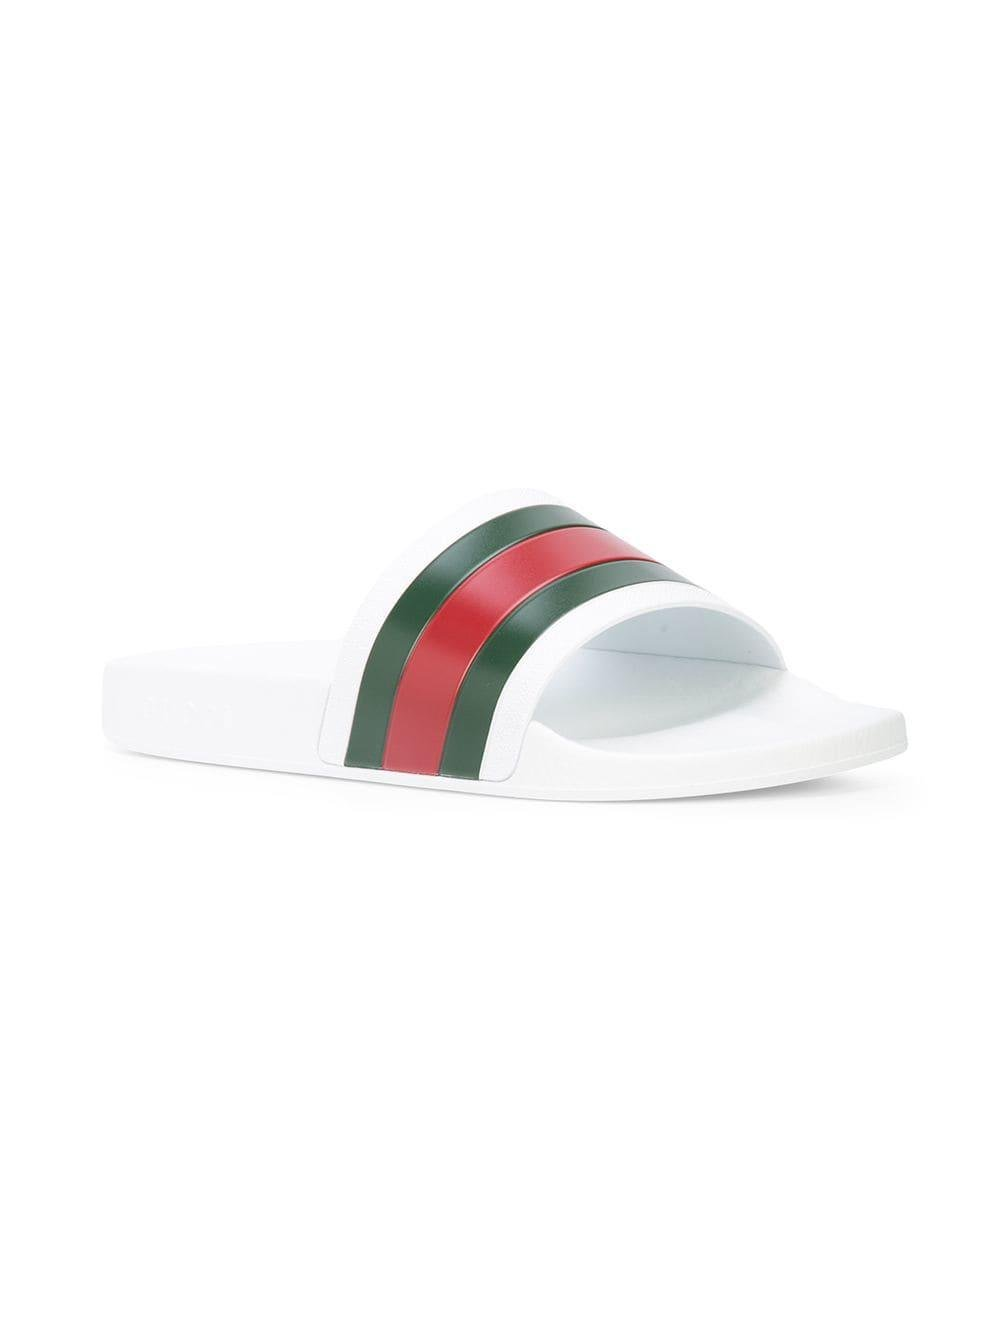 f2e42d0a6bb4 Gucci Green And Red Slides - Best Photos Of Green Simagen.Org